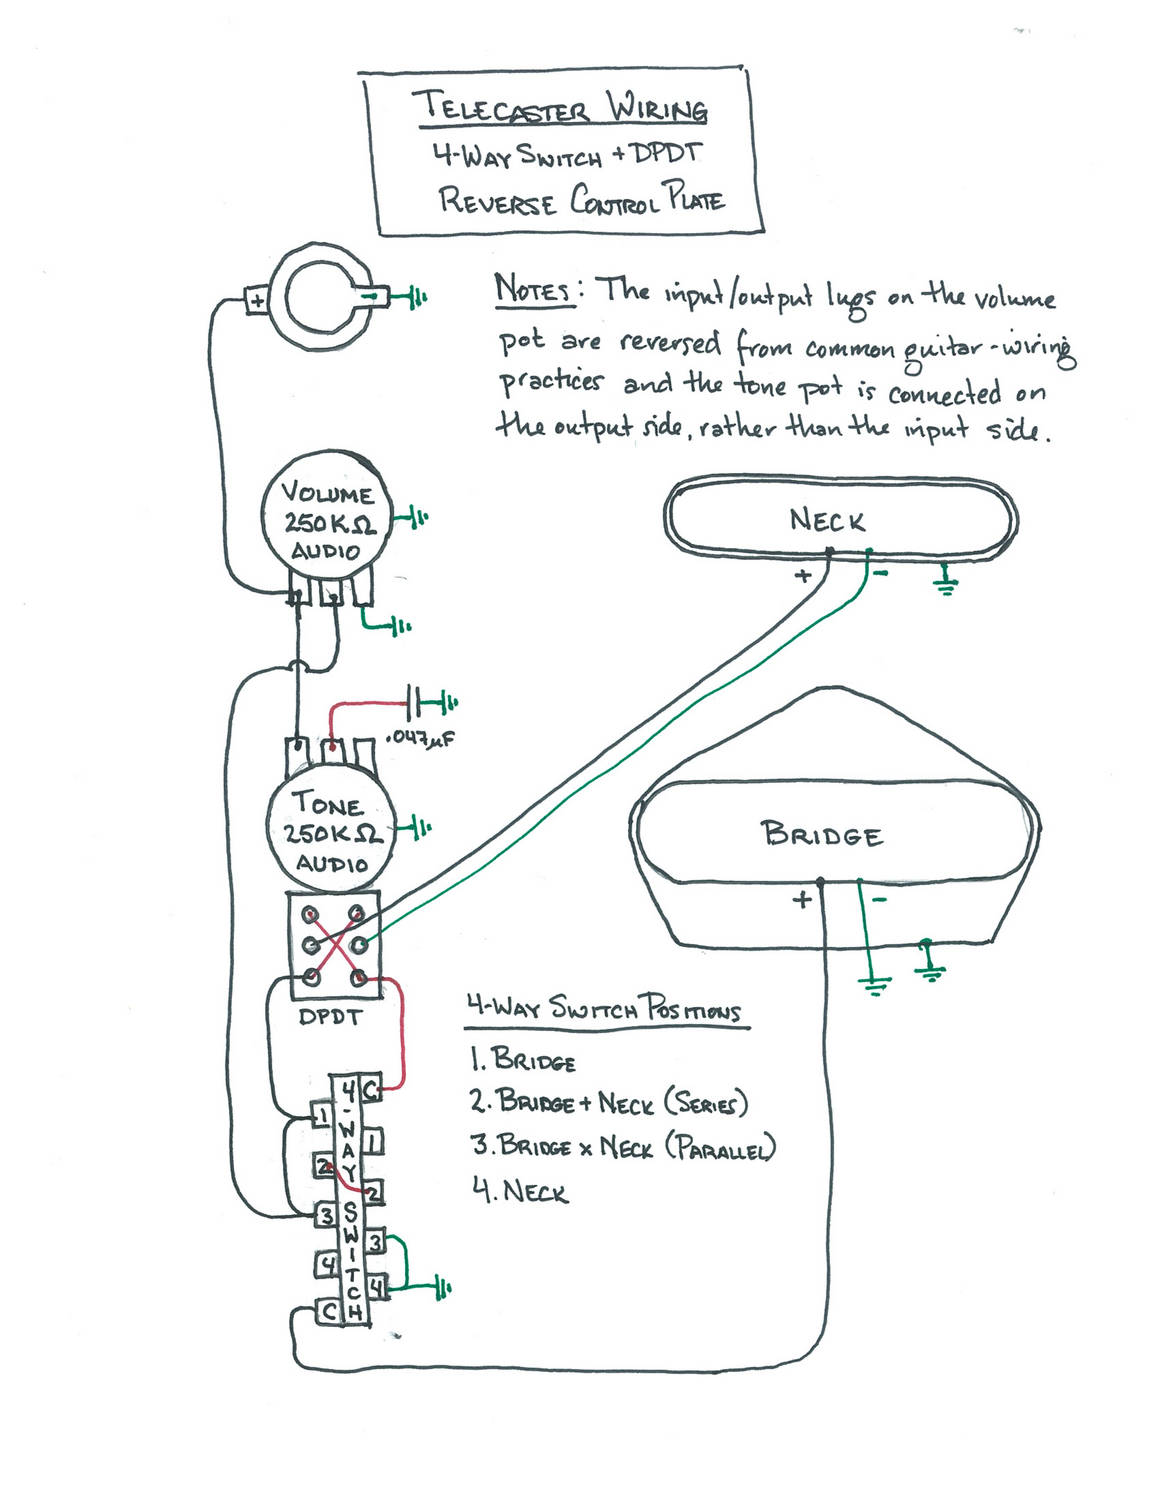 Wiring Diagram: Tele 4-way switch with DPDT - reverse control plate on 5 way telecaster wiring diagram, tele switch wiring diagram, fender 4-way diagram, tele bass wiring diagram,